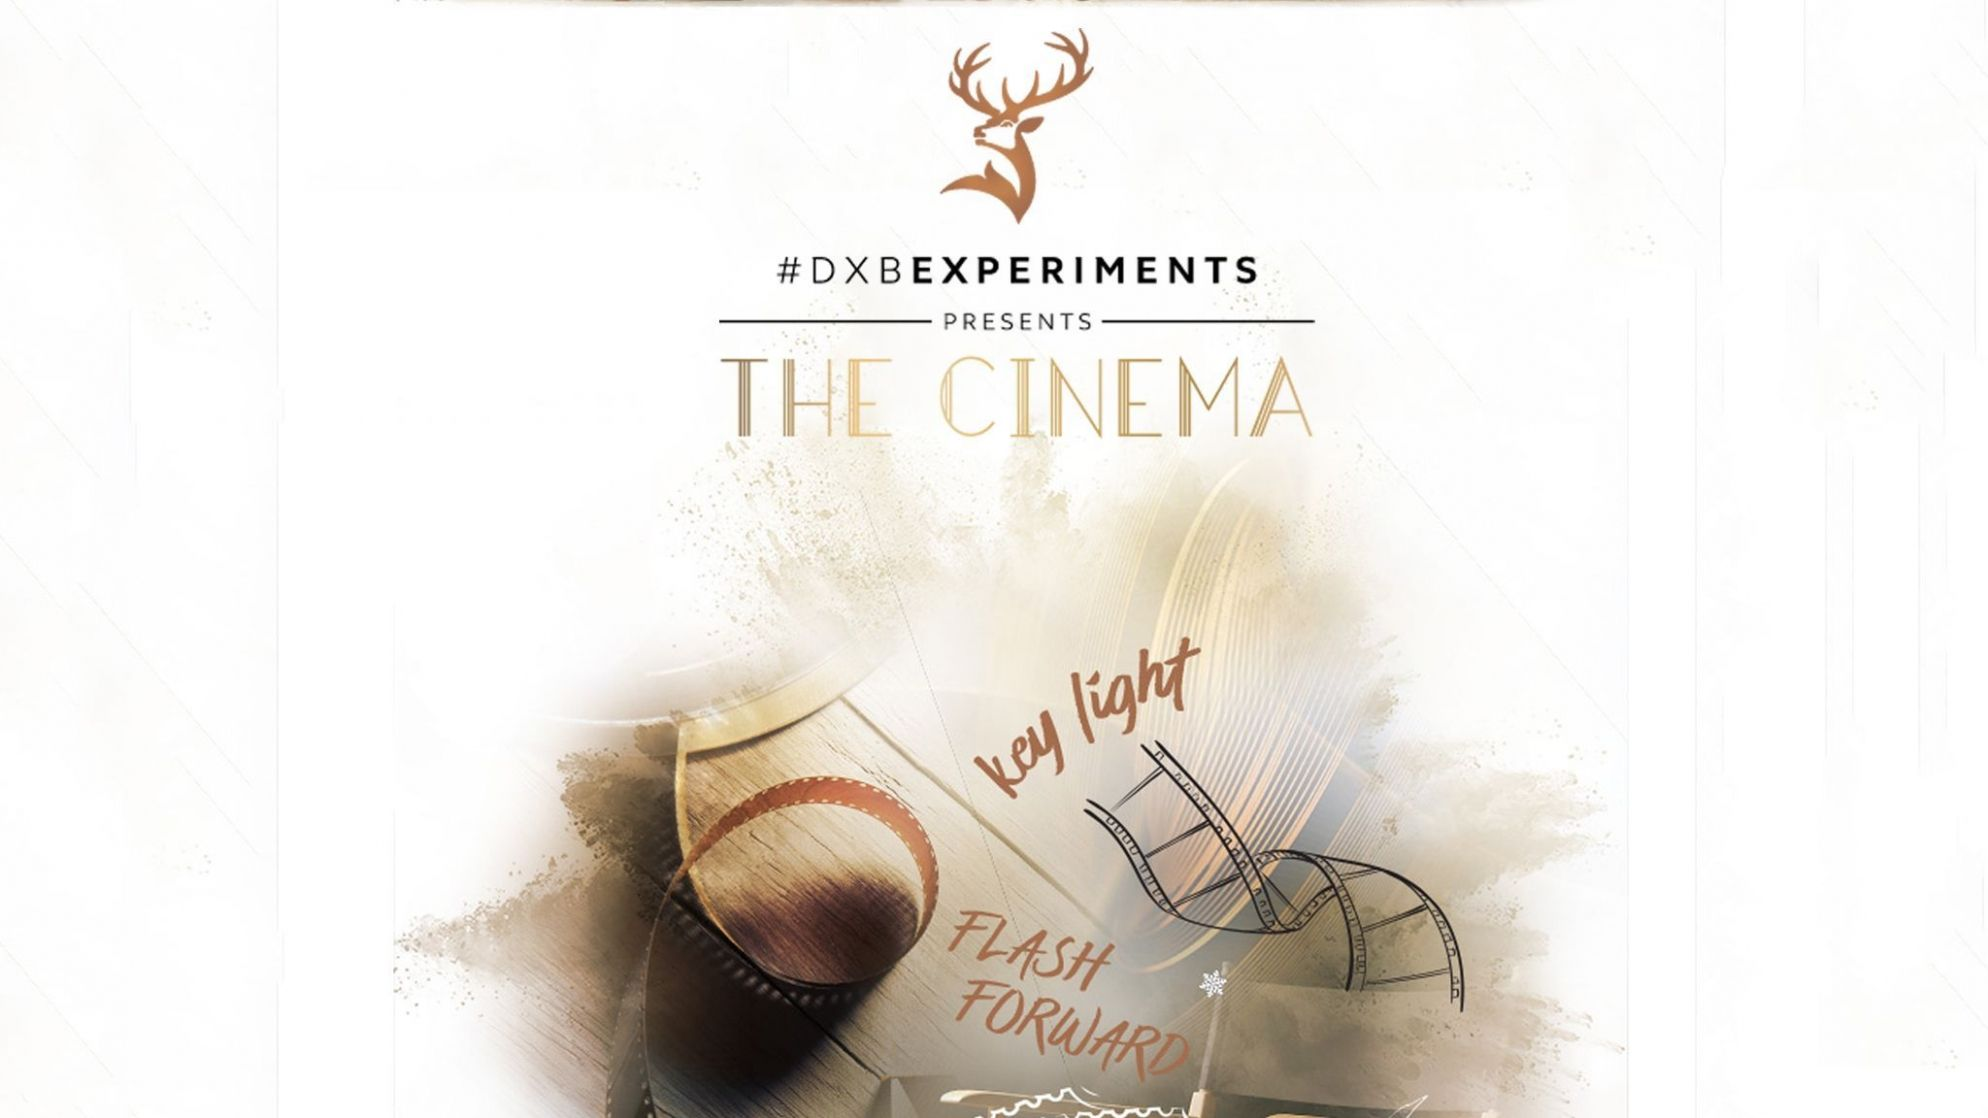 #DXBExperiments presents The Cinema with Rhodes Twenty10